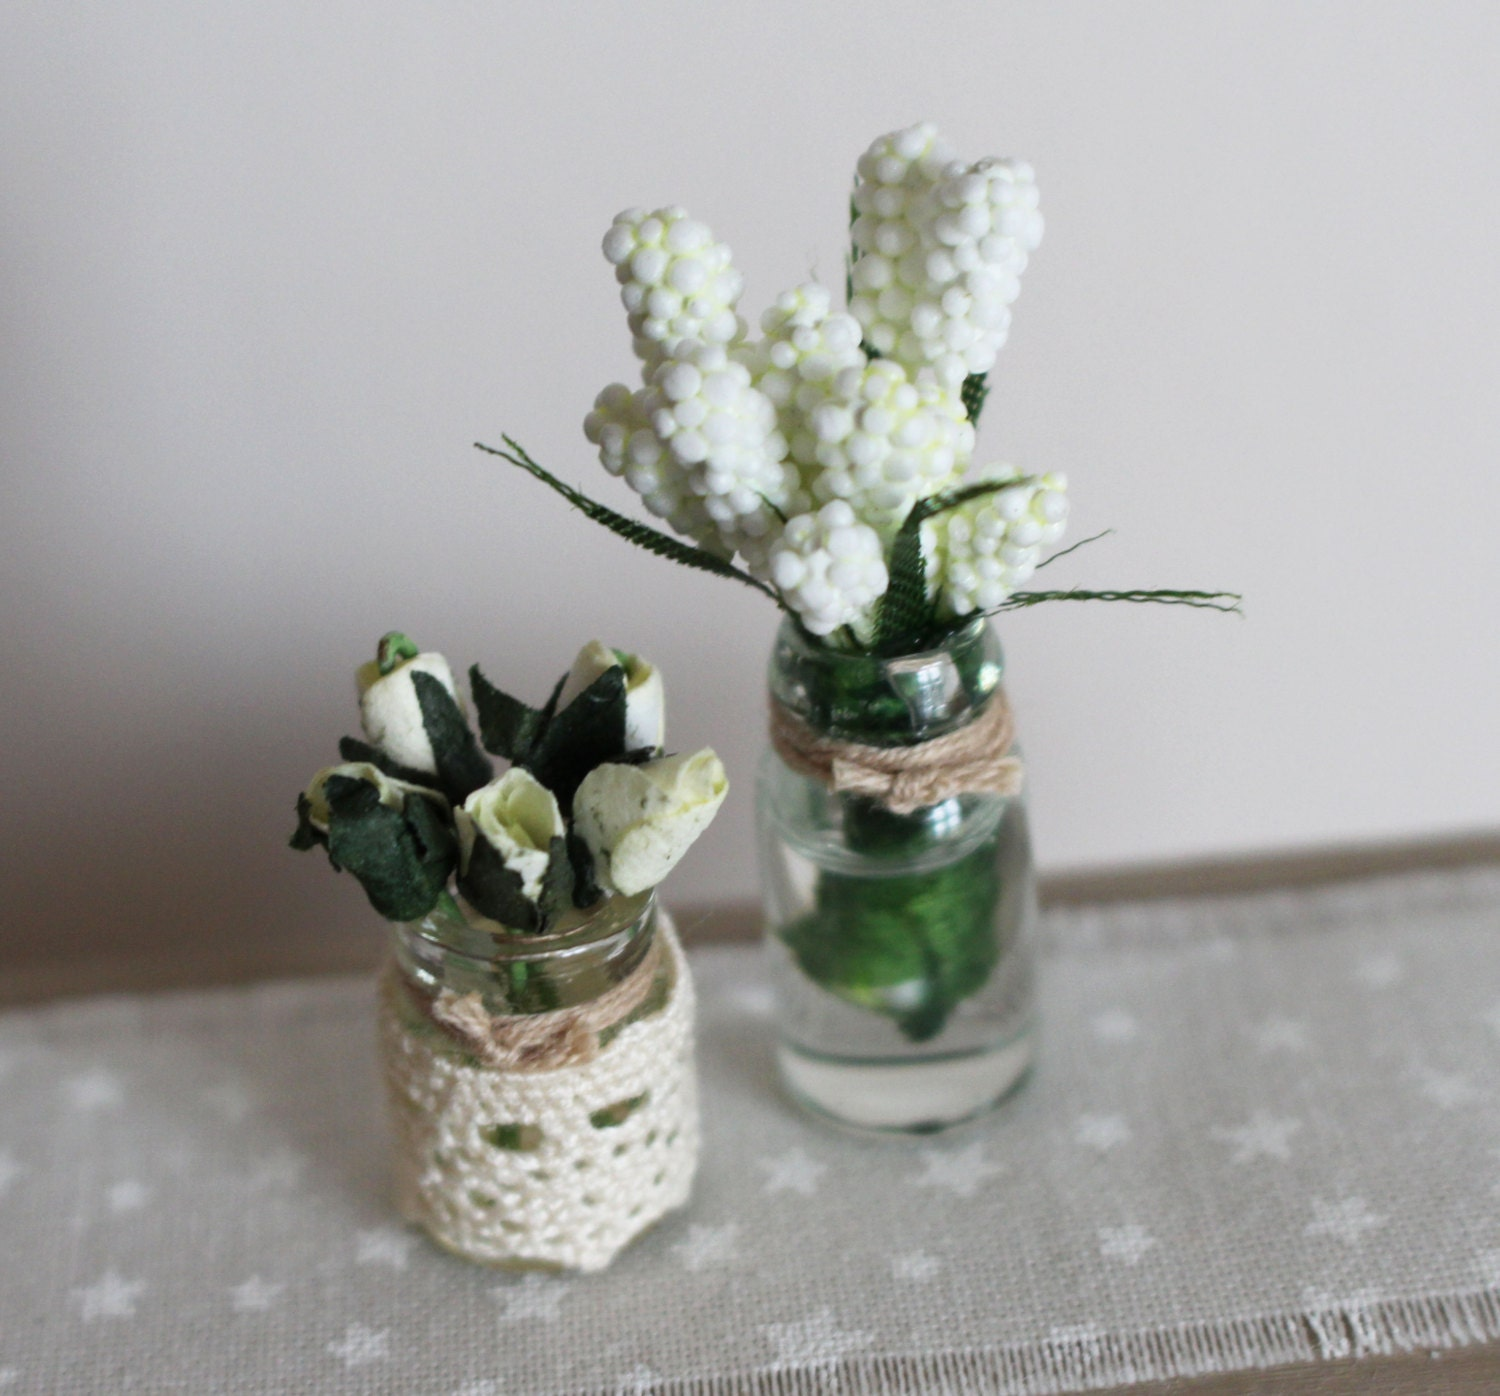 Dolls House Miniature Flowers in Vase